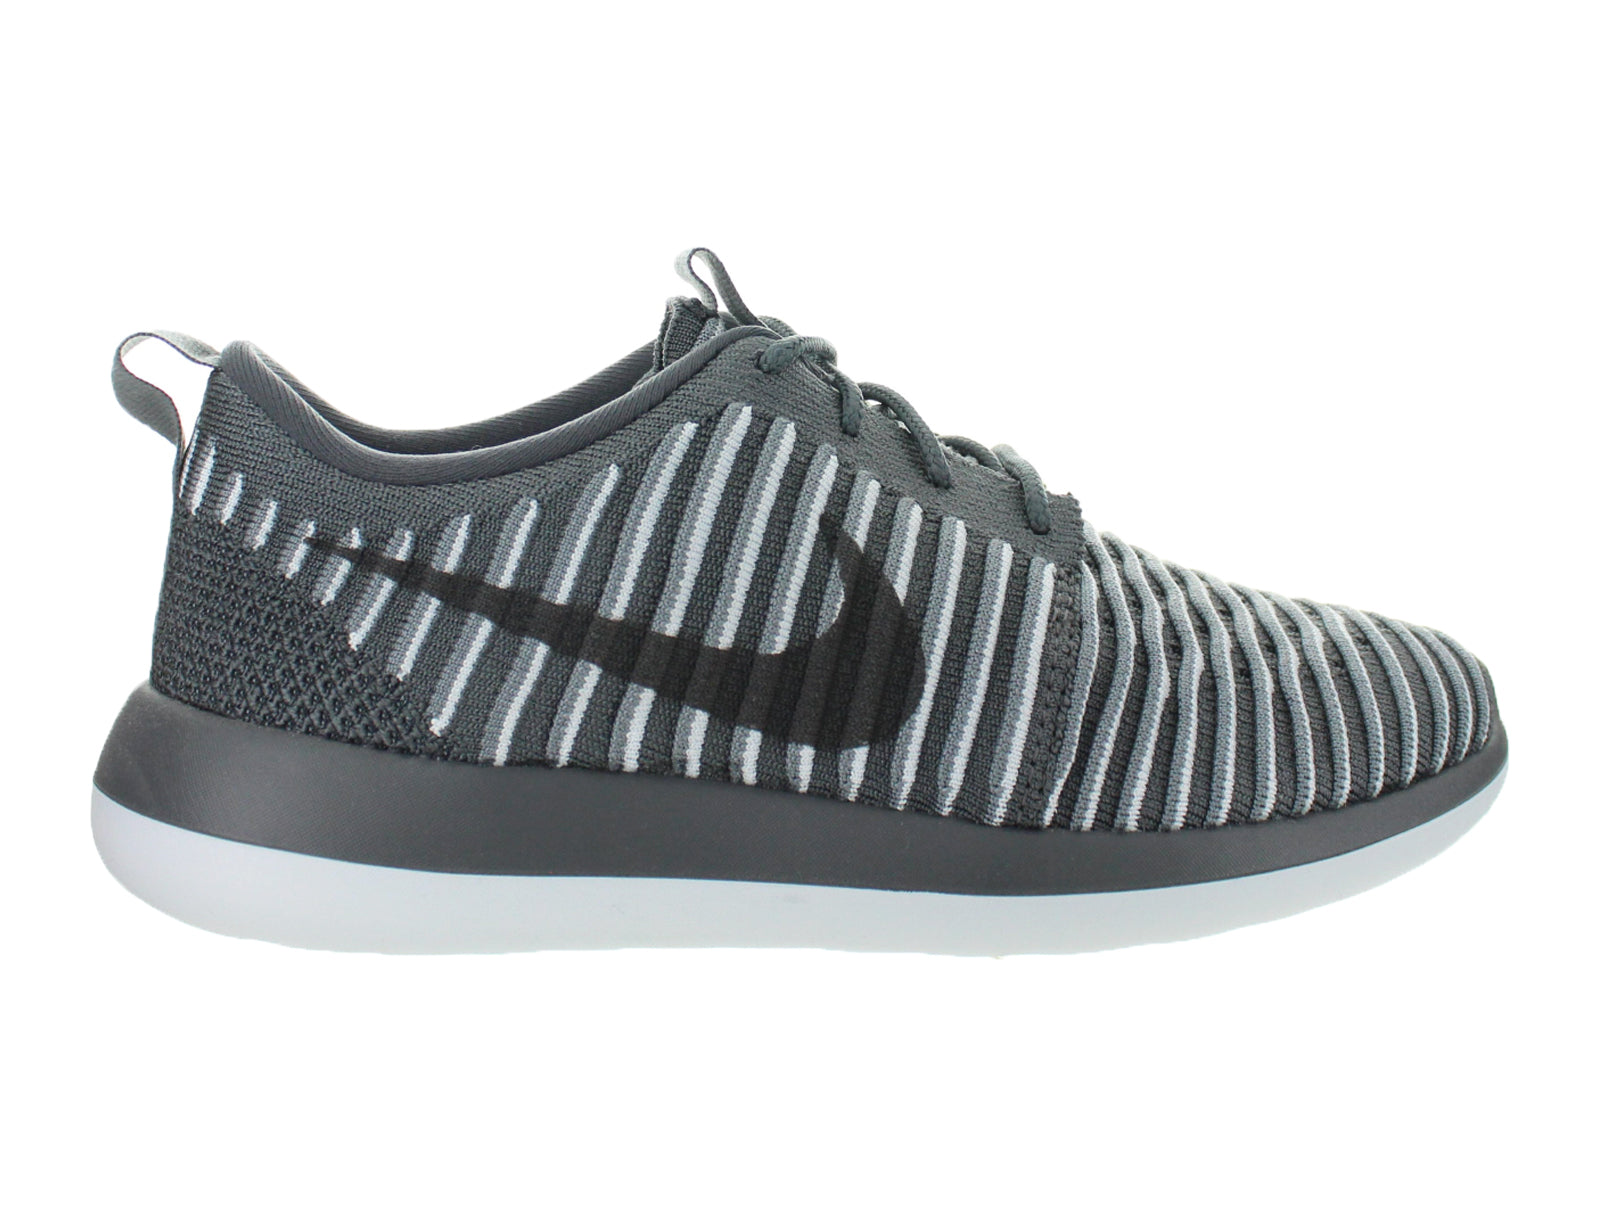 release date 400ad 8c075 Womens Nike Roshe Two Flyknit Dark Grey Pure Platinum 844929-002